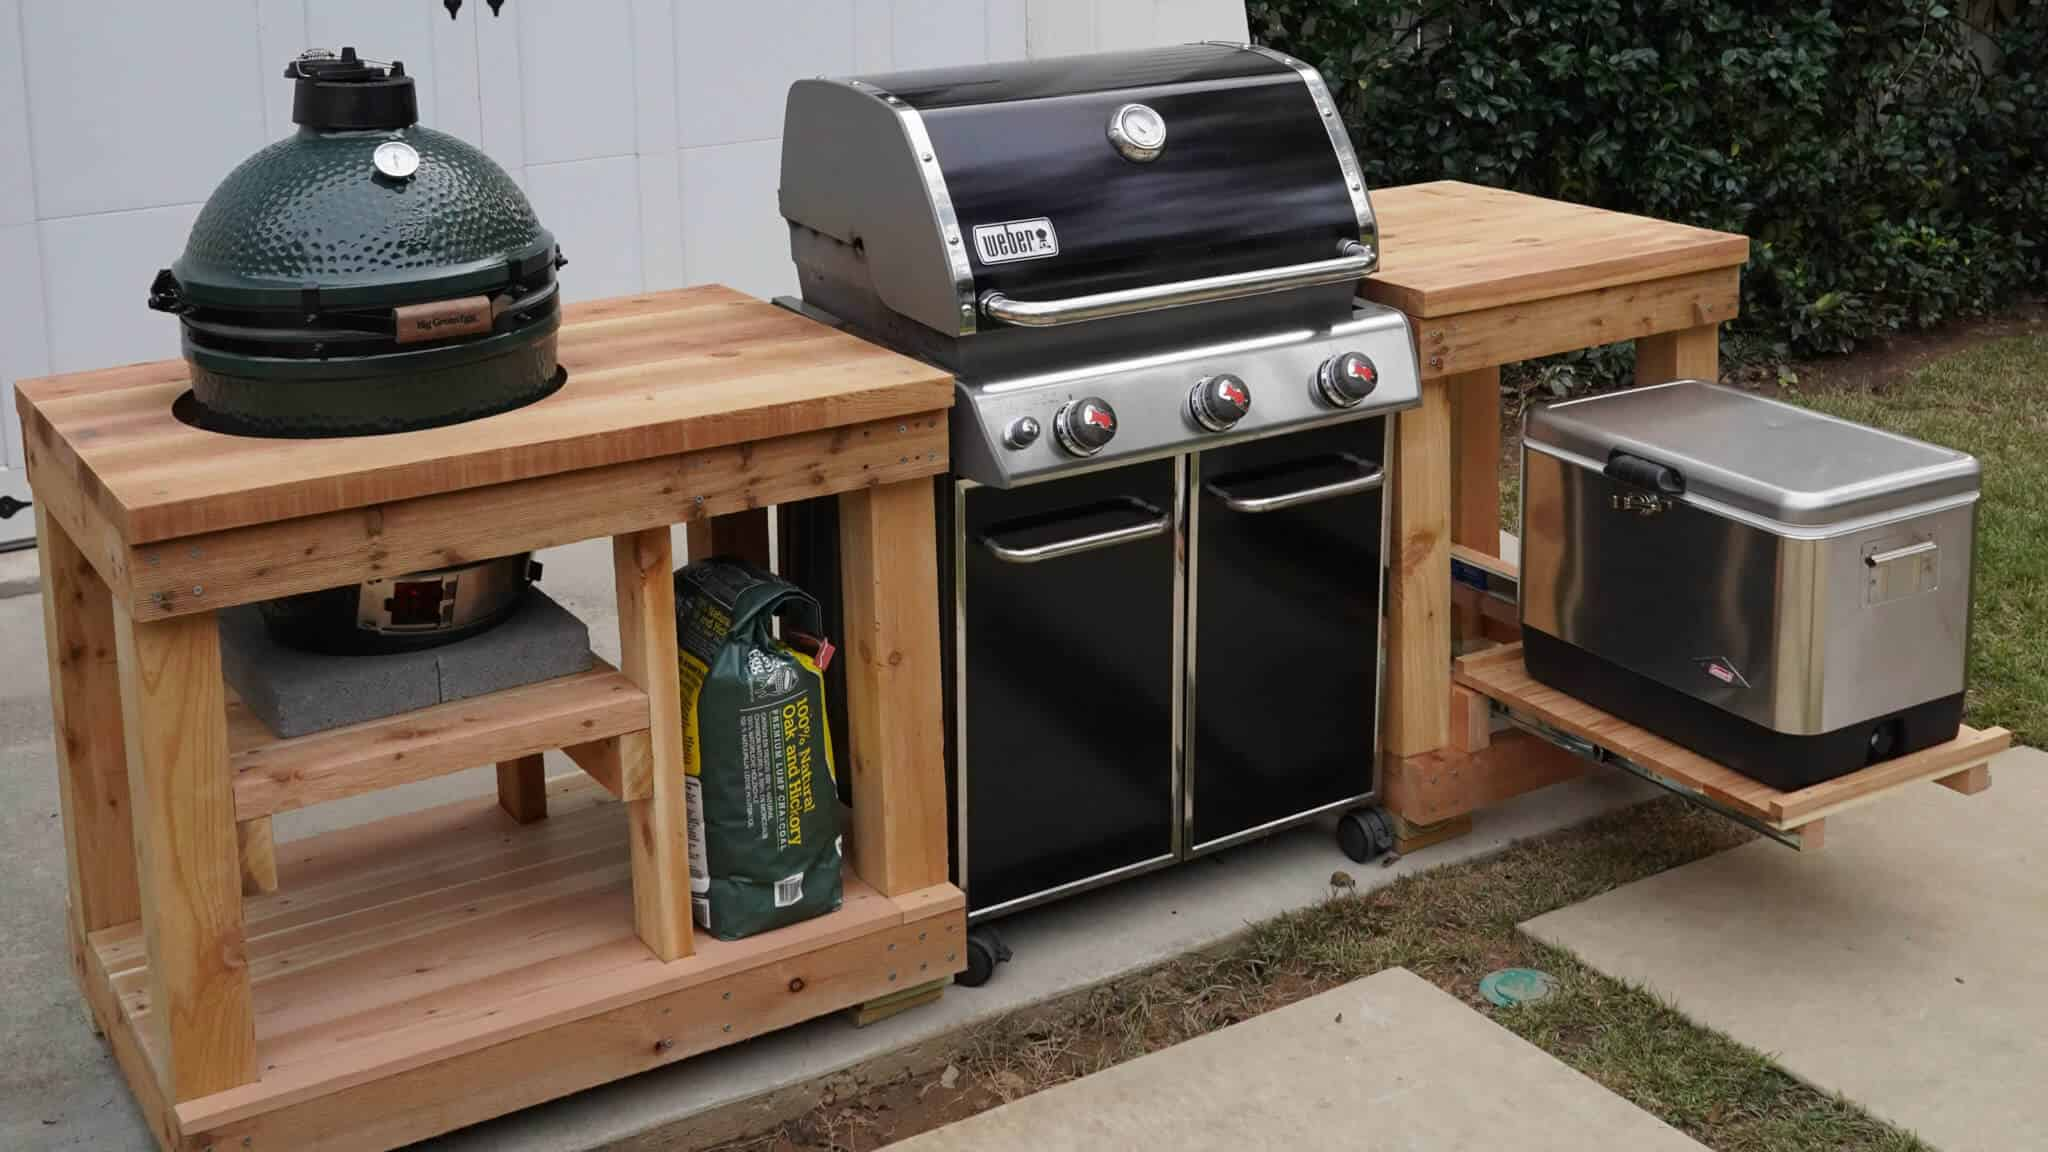 Grill island idea for an outdoor kitchen